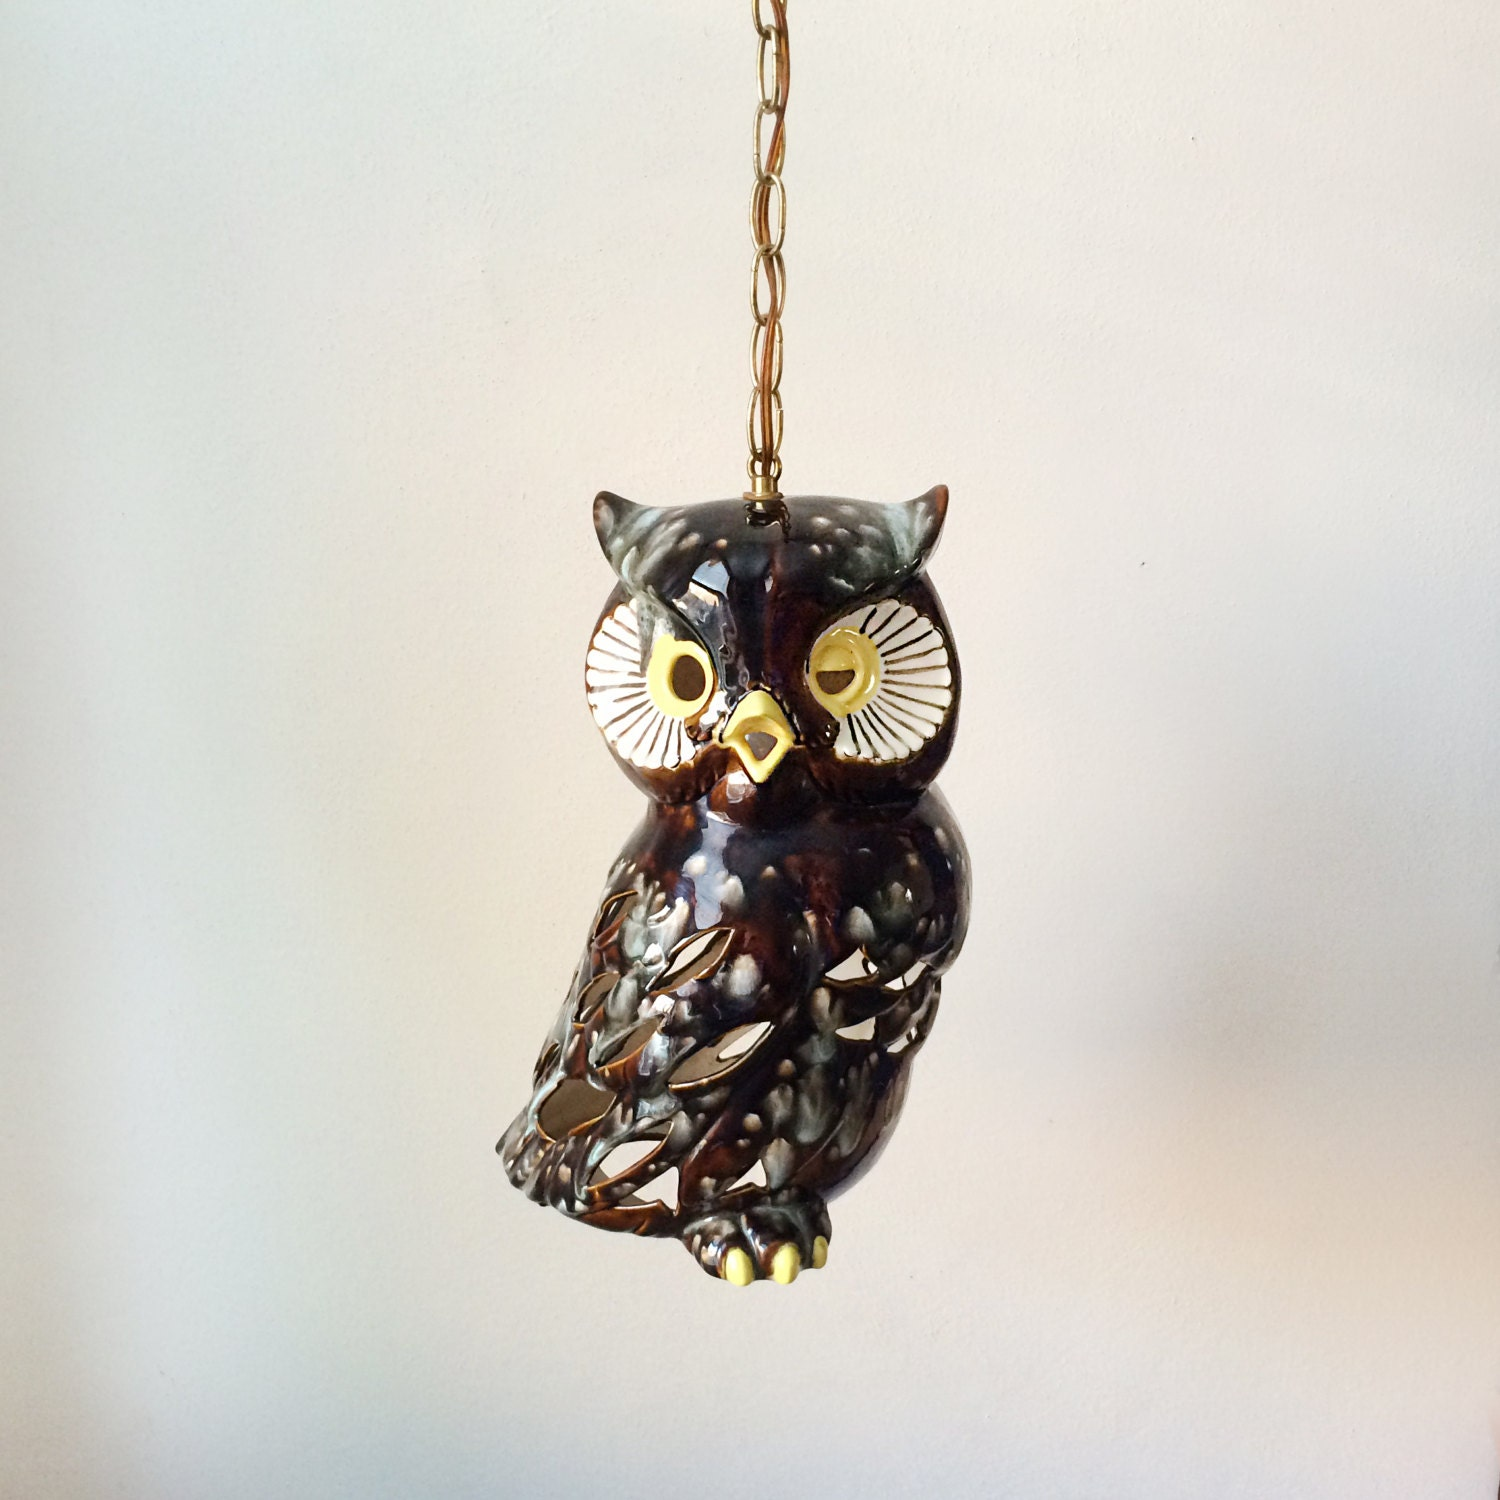 Vintage Owl Pendant Lamp Swag Lamp Hanging Light